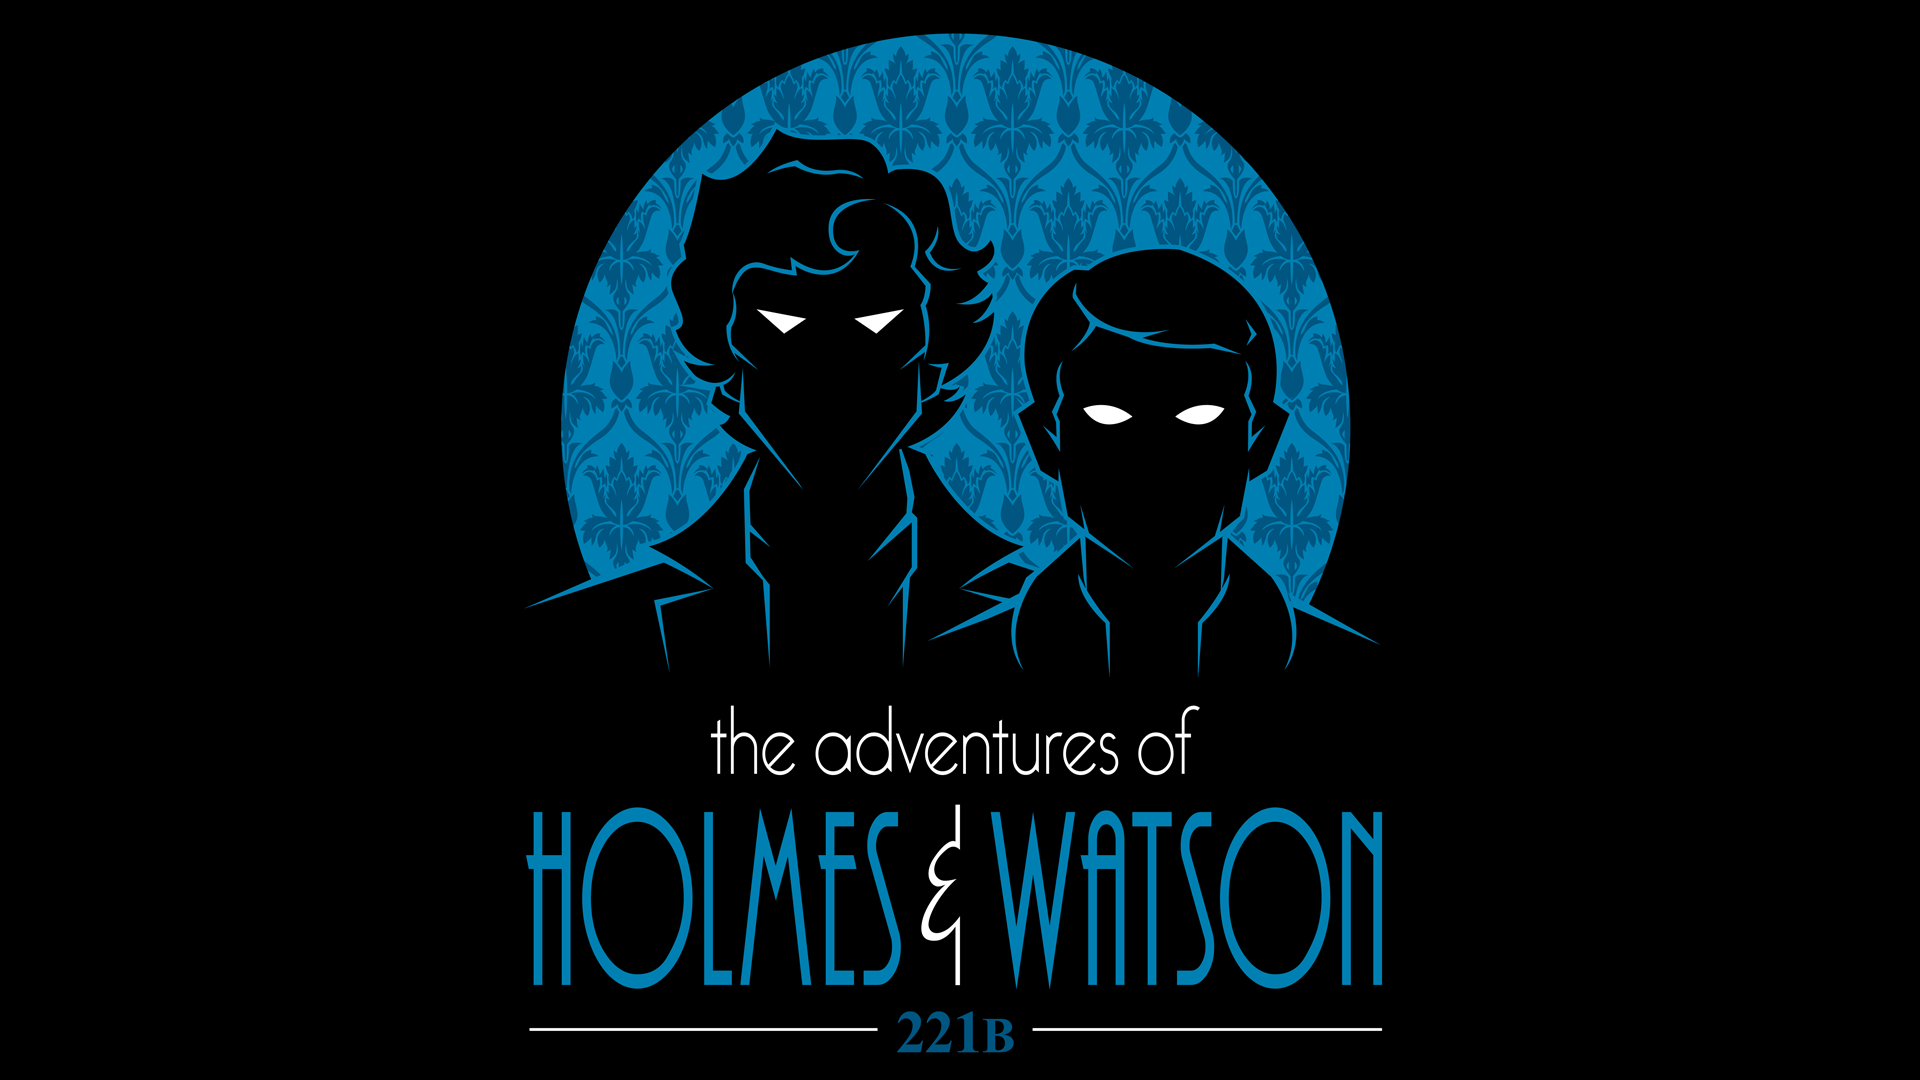 The Adventures Of Holmes And Watson Wallpaper In Style